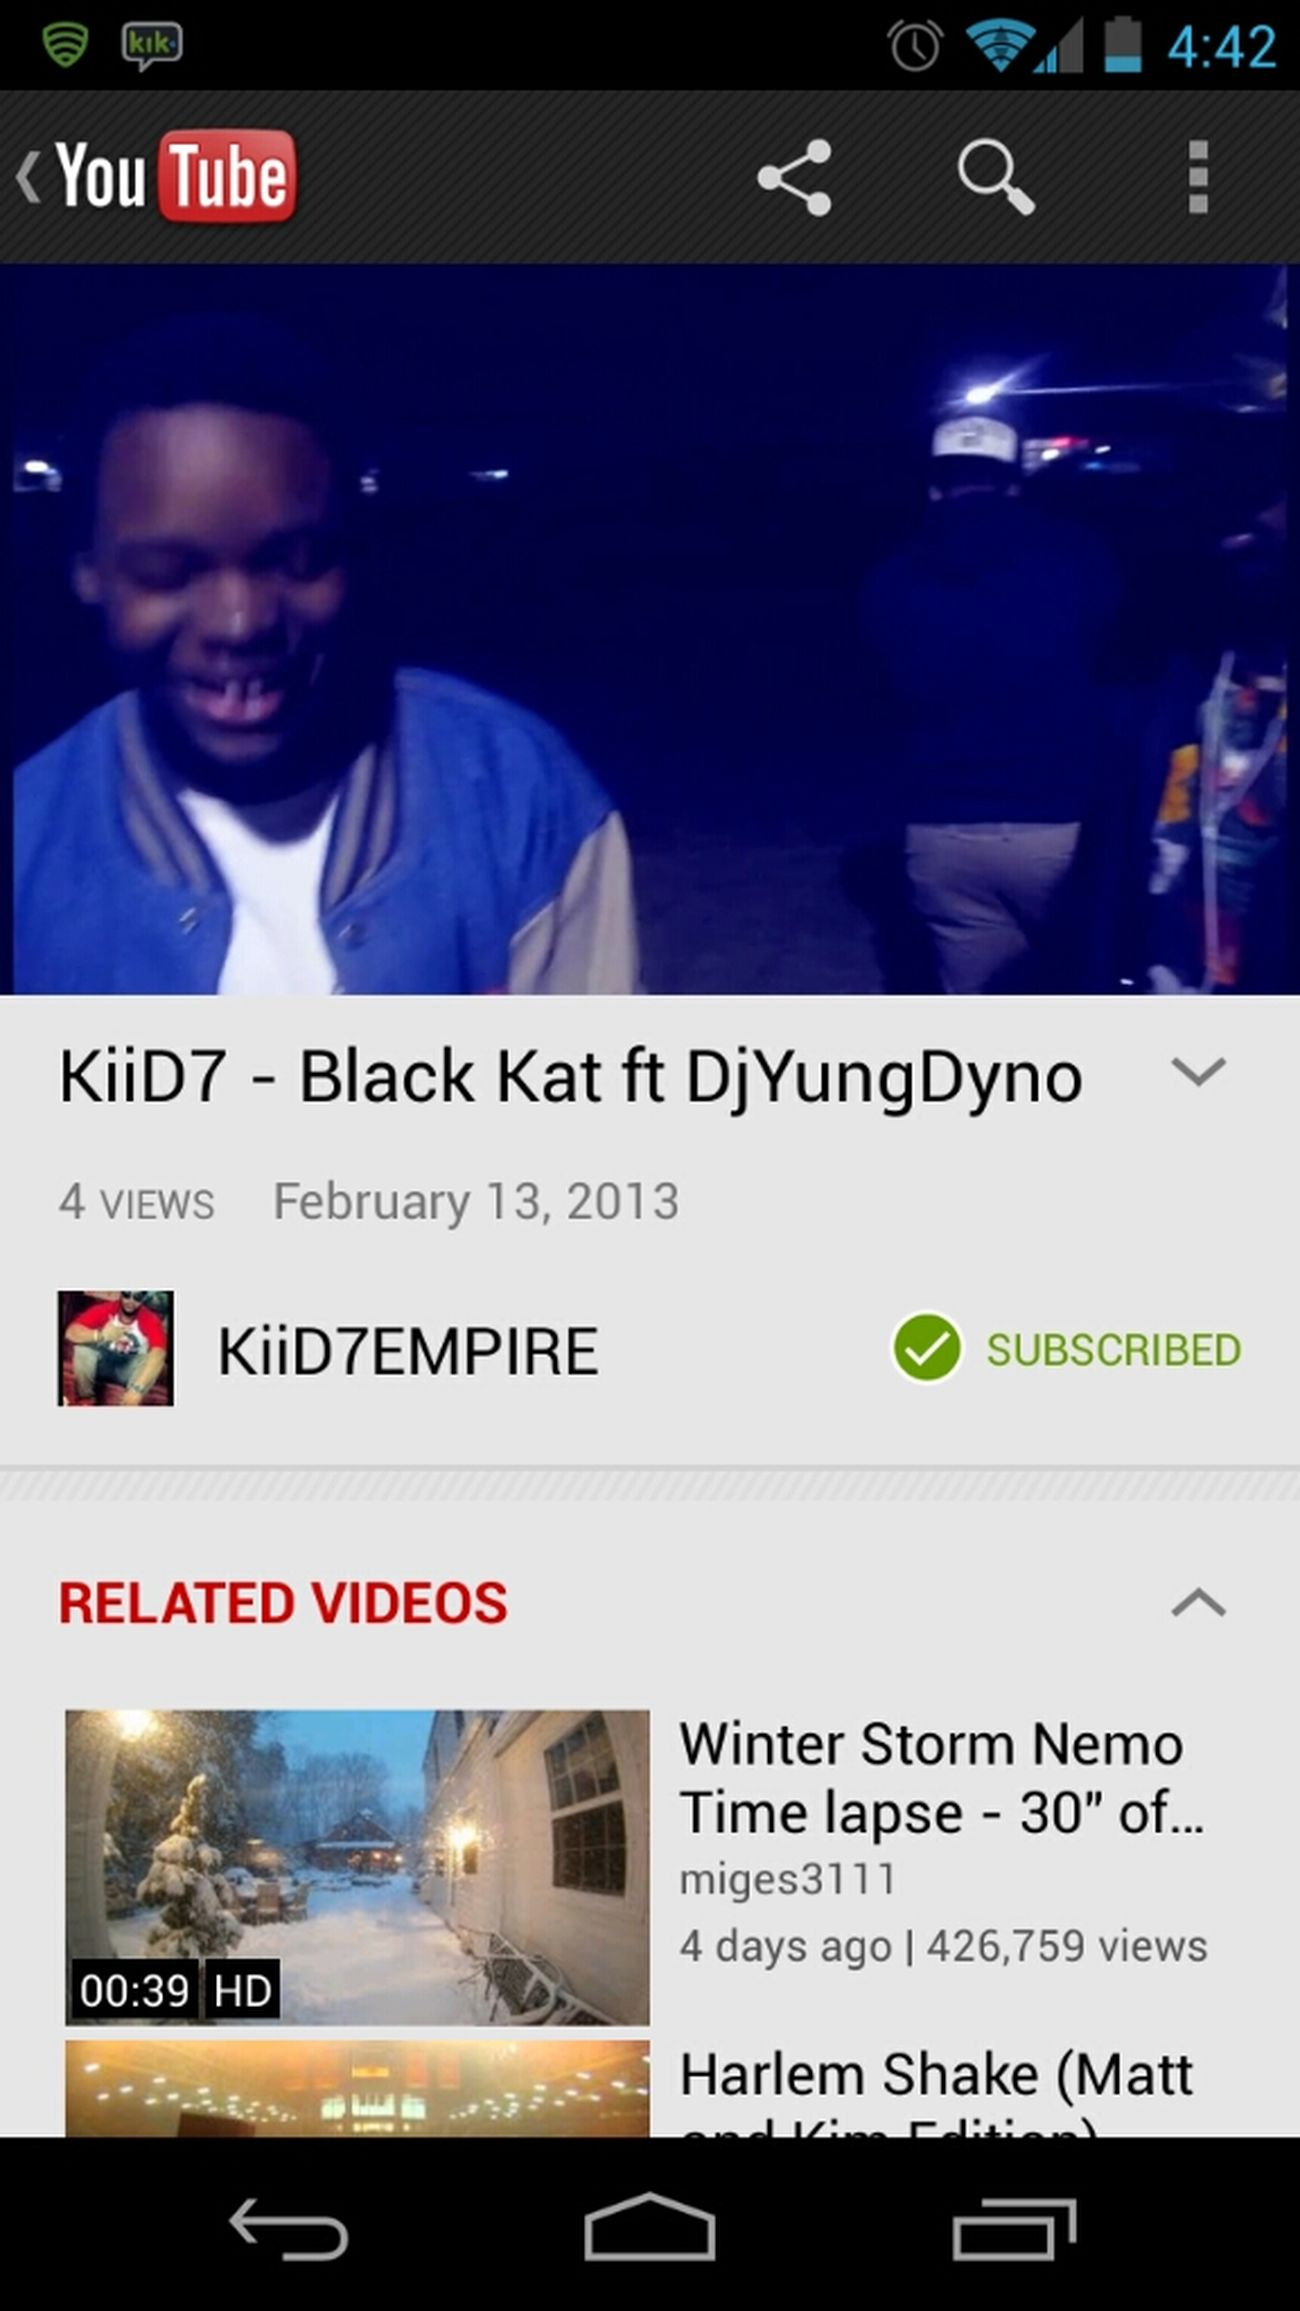 go watch the new music video black Kat by KiiD7 ft me >>>> https://www.youtube.com/watch?v=67SgNp7dy5s&feature=youtube_gdata_player